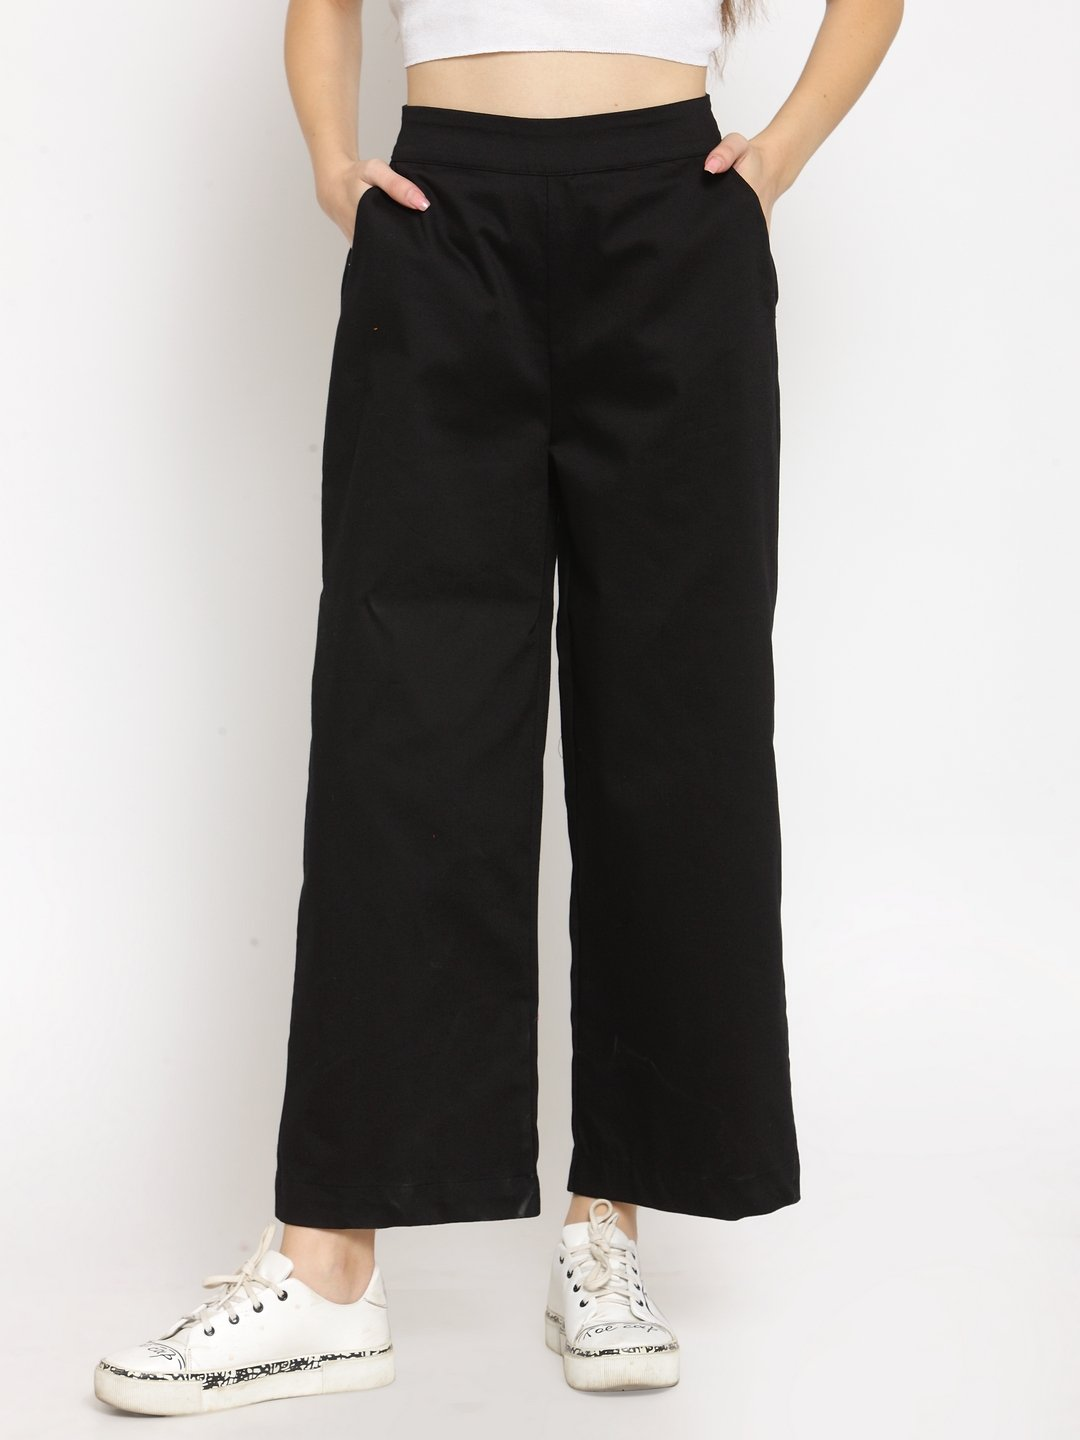 Castle Black Solid Wide leg Pants